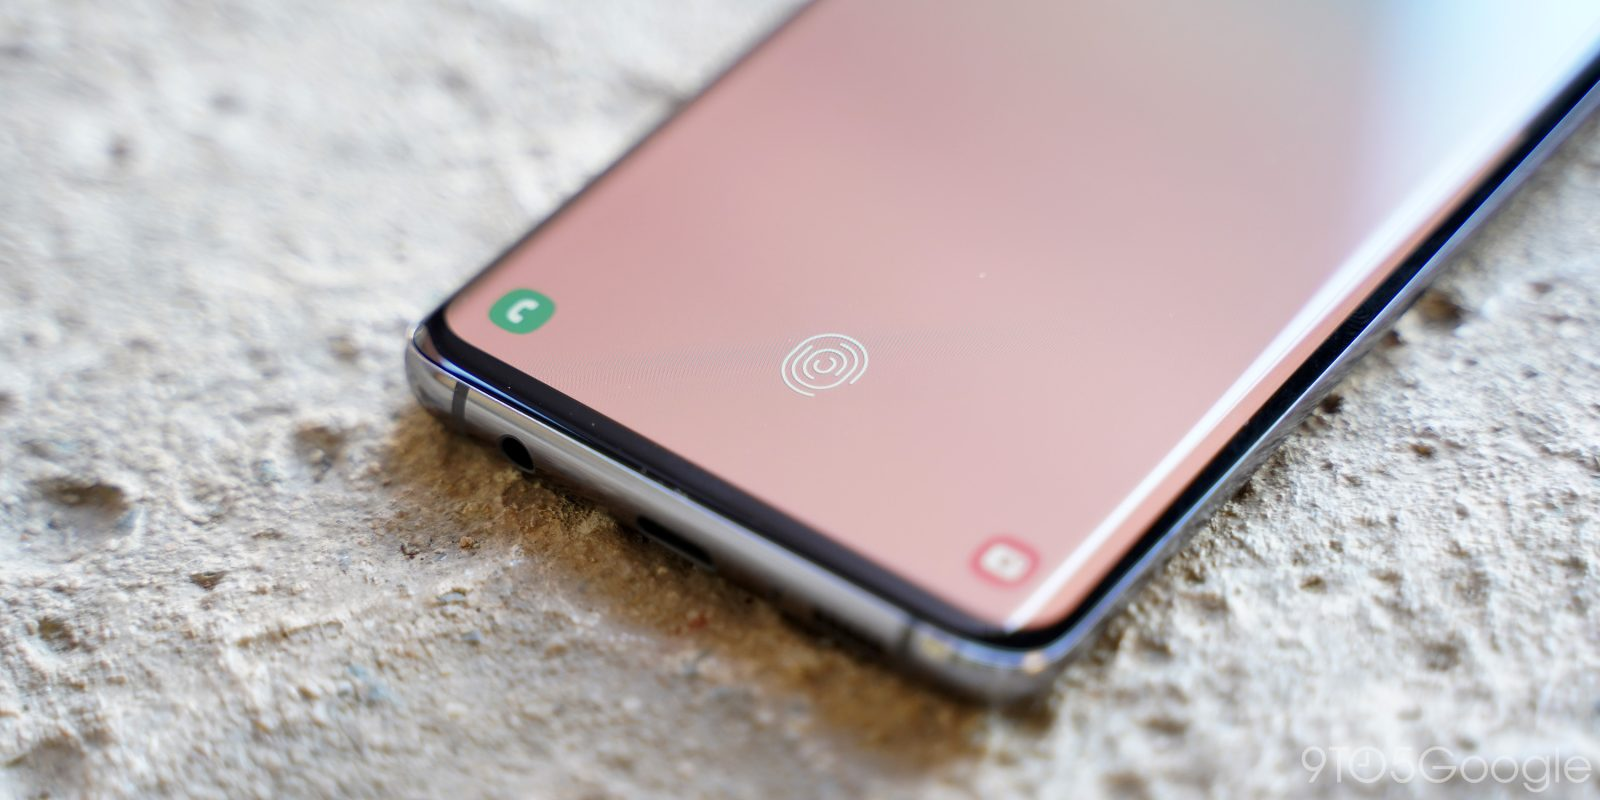 Samsung Galaxy S10's ultrasonic fingerprint sensor took under 15 minutes and a 3D print to be fooled